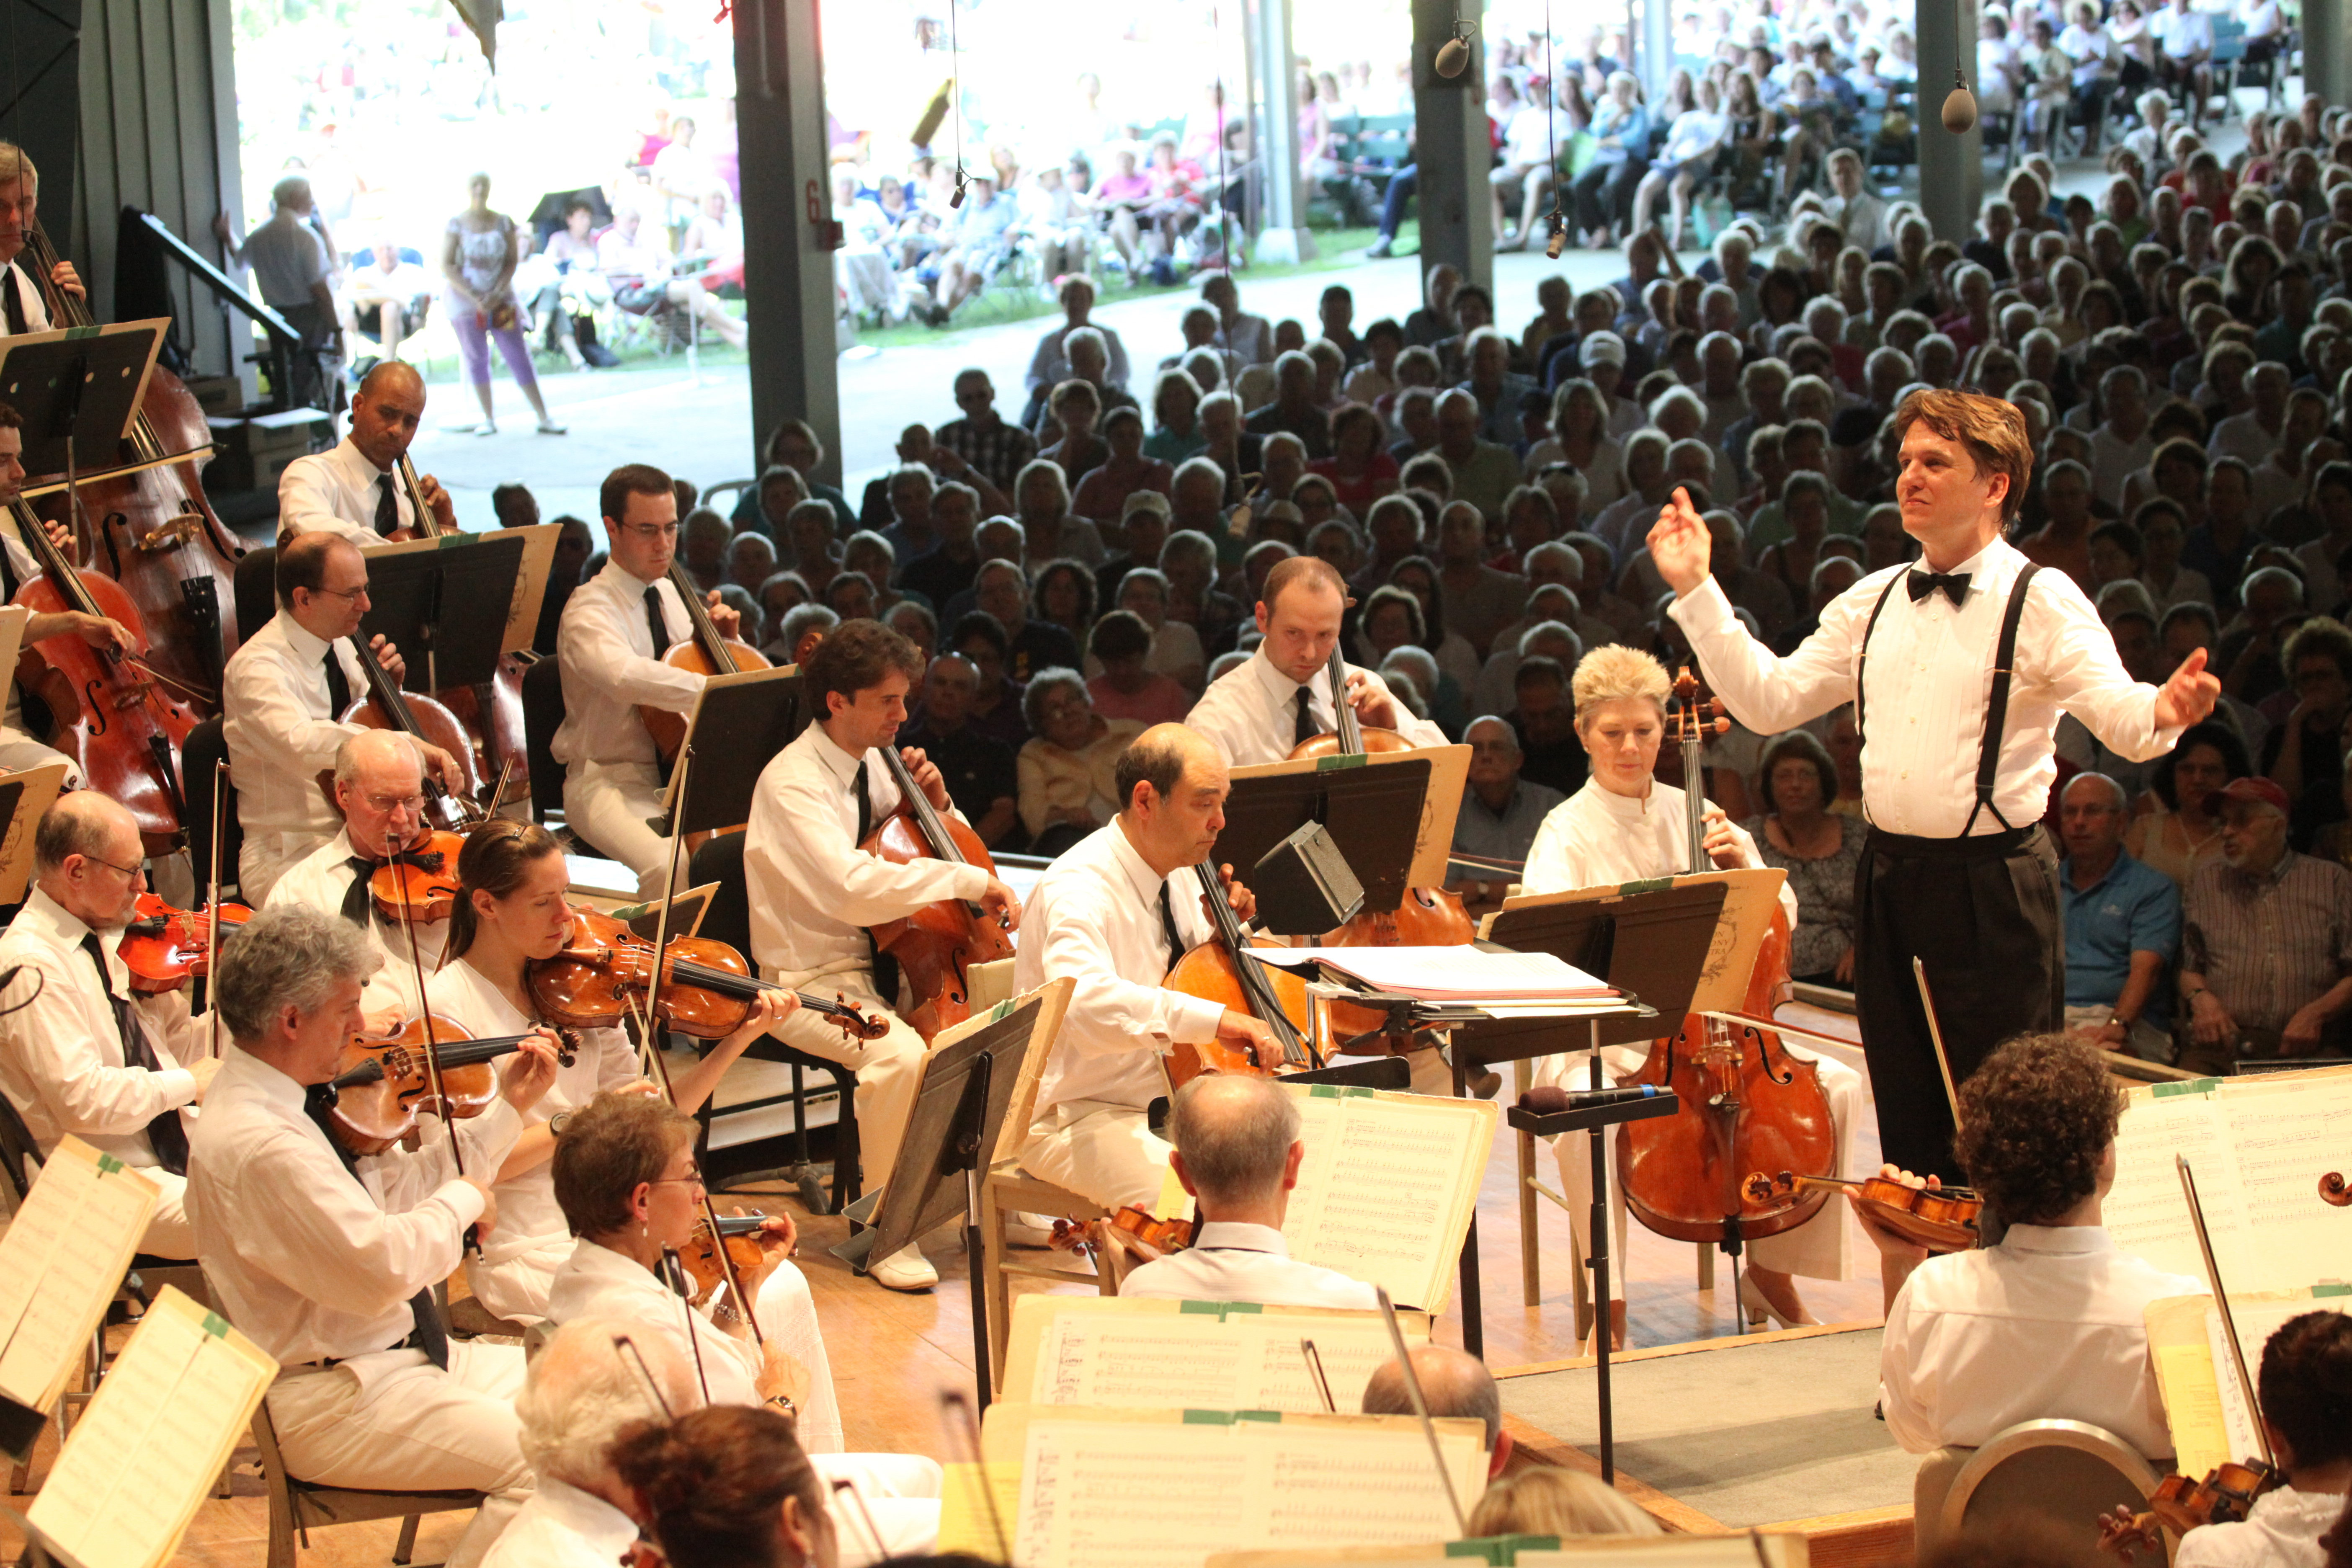 Keith Lockhart Leads the Boston Pops at Tanglewood (Hilary Scott)